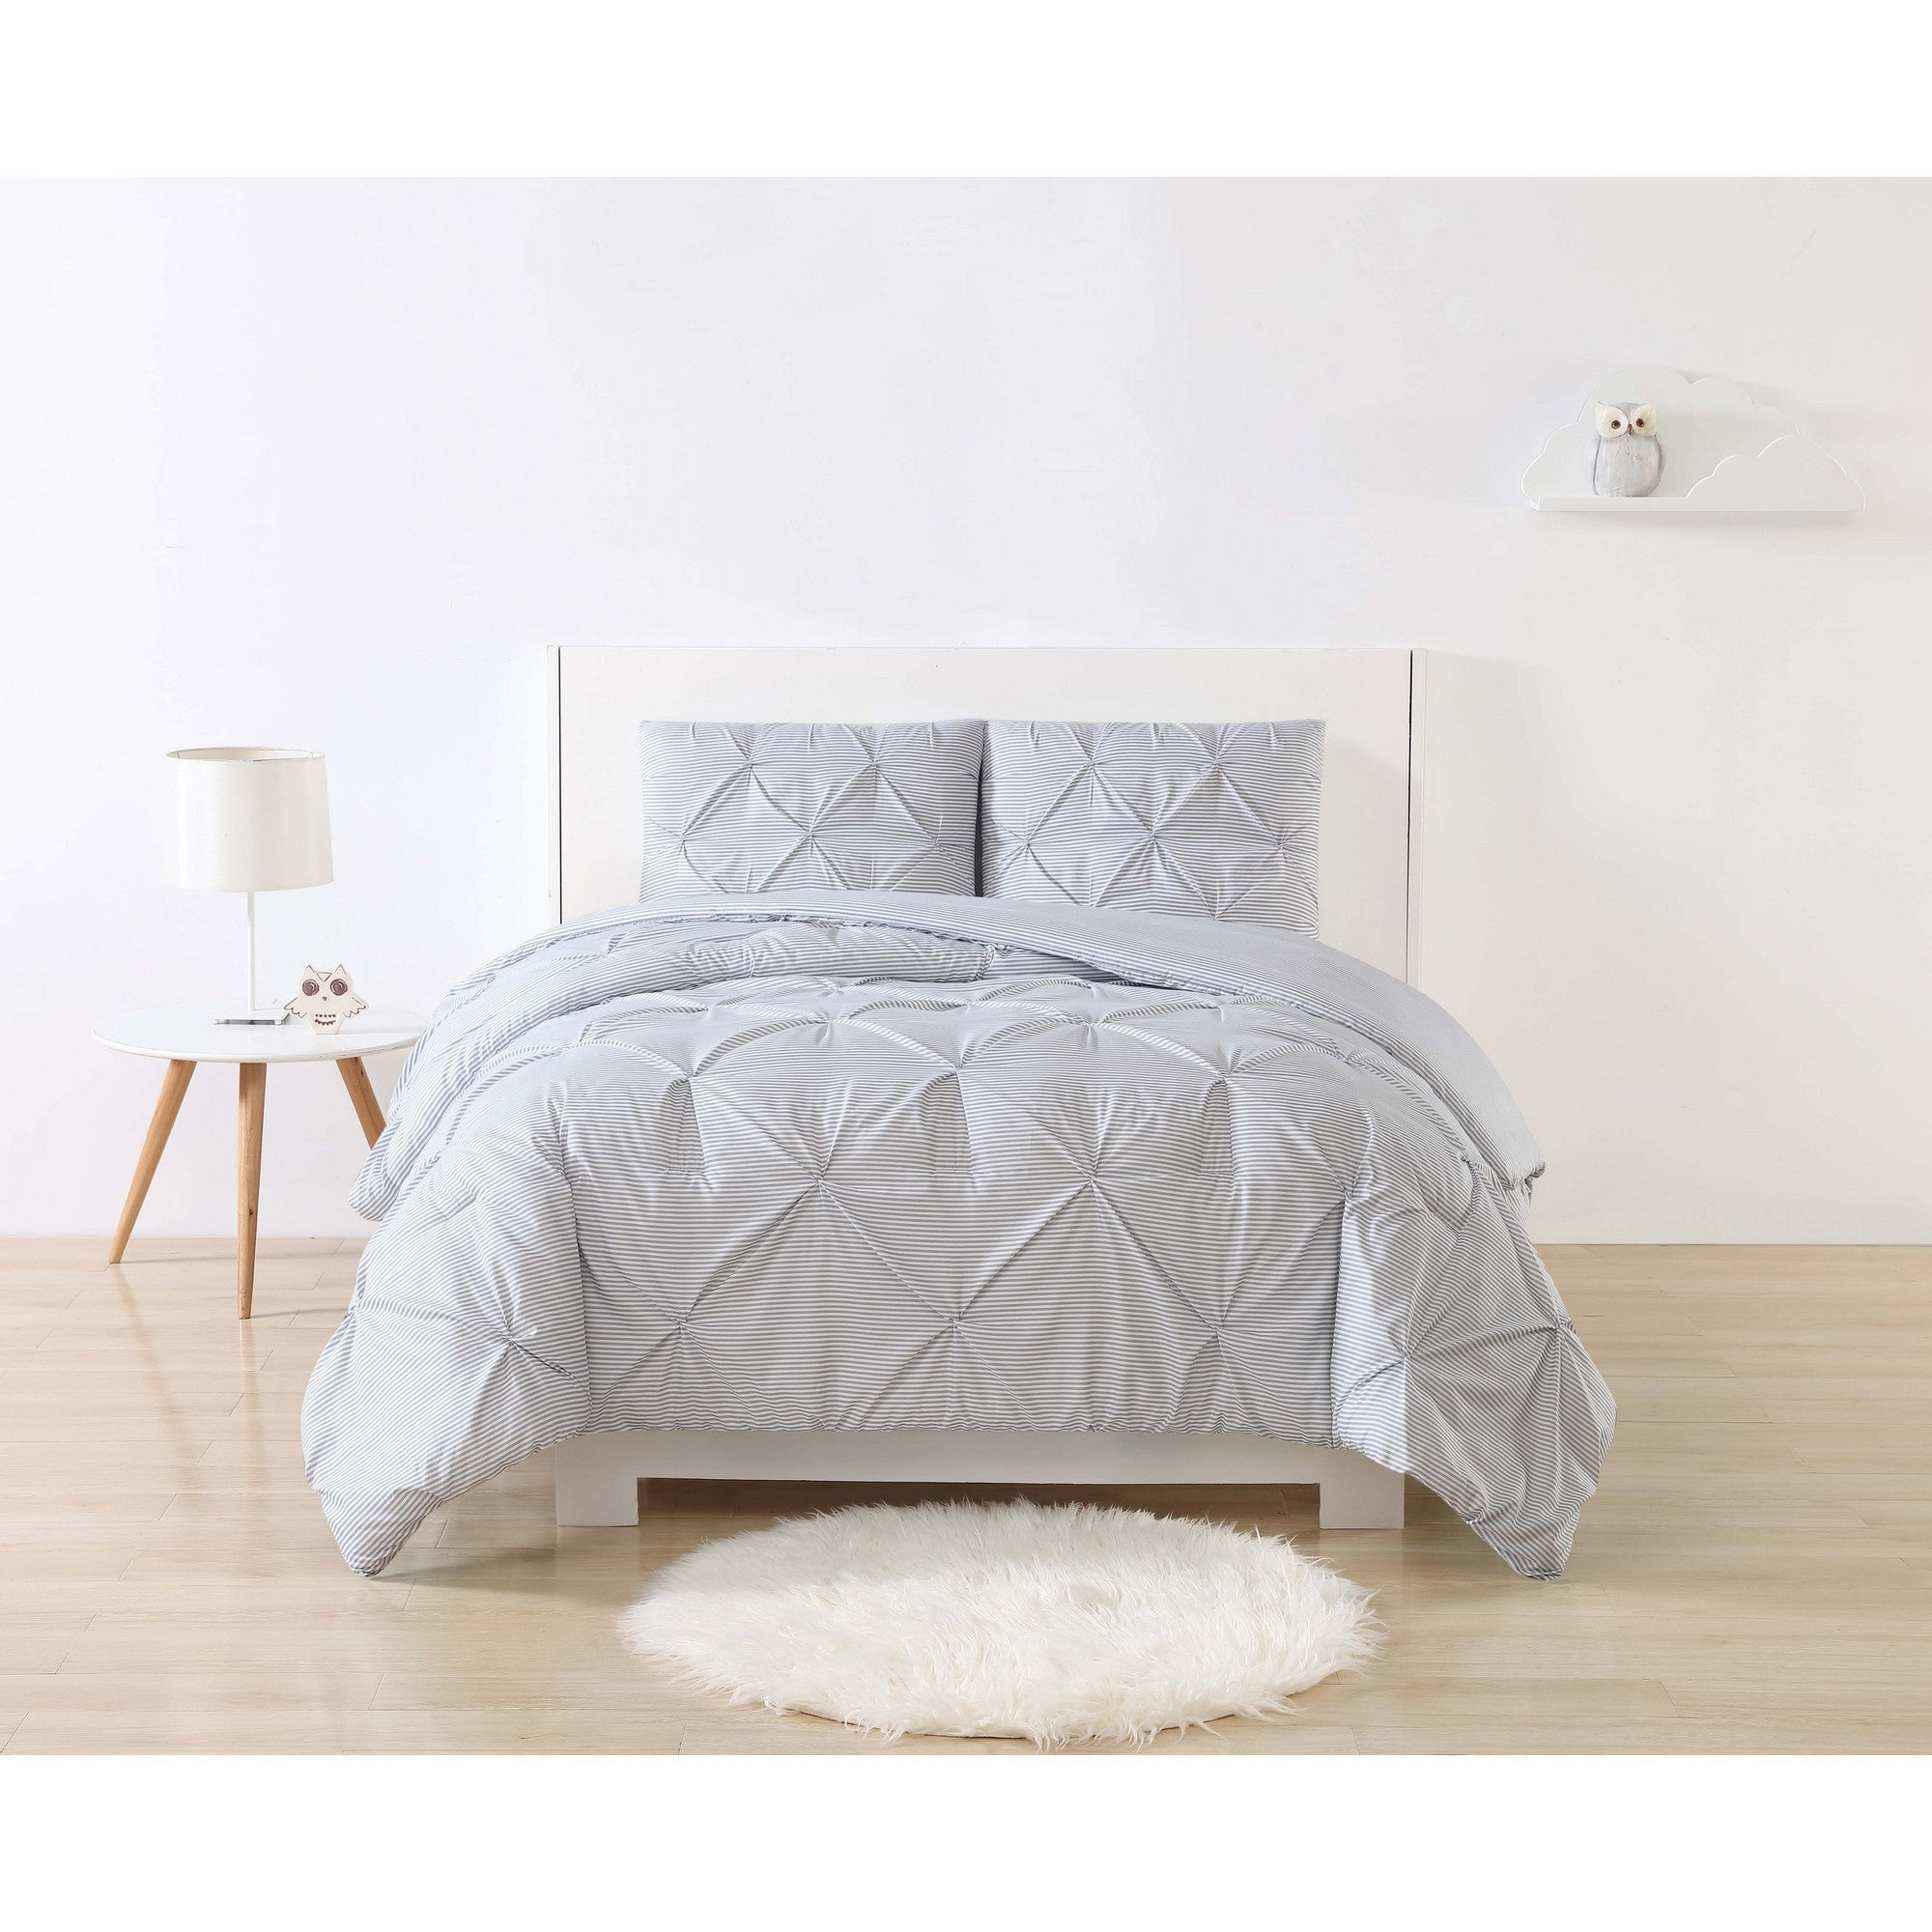 set season all piece itm pleat luxurious quality pintuck pinch highest wrinkle decorative full comforter resistant queen